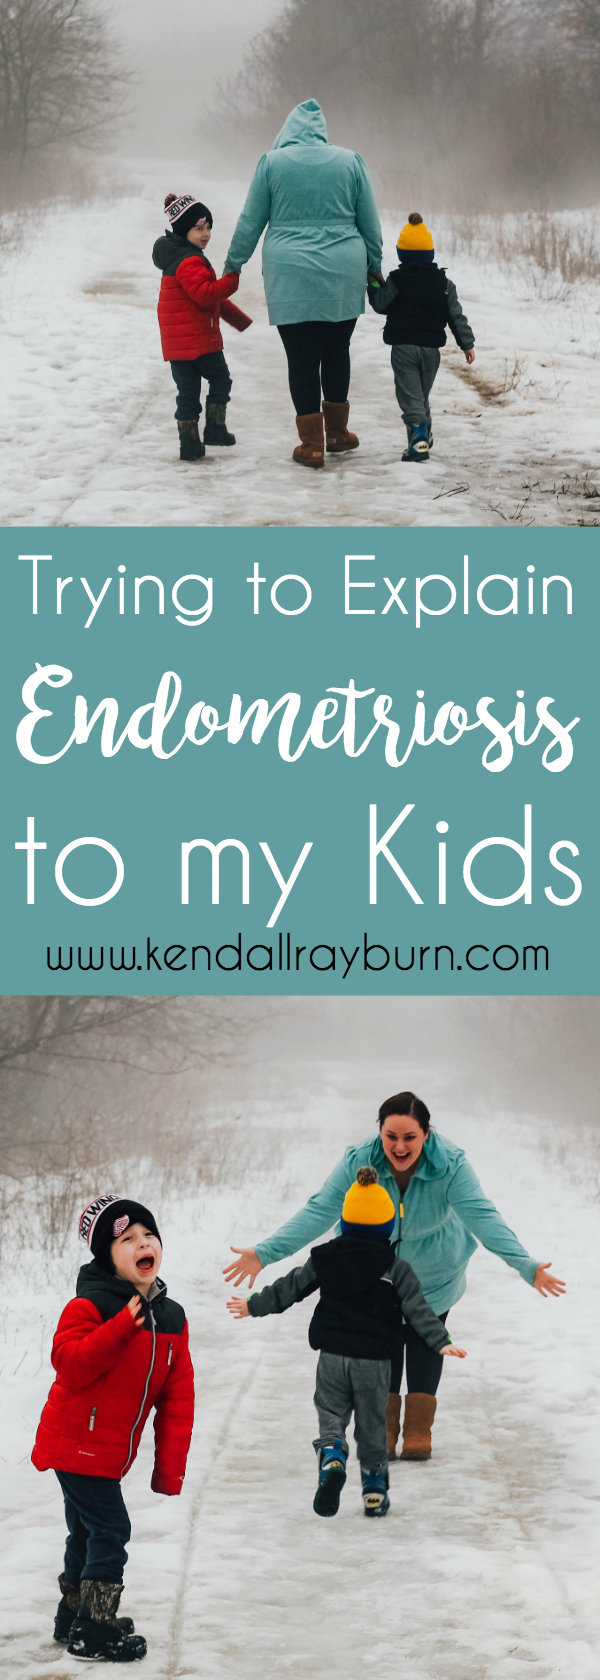 Trying to Explain Endometriosis to My Kids